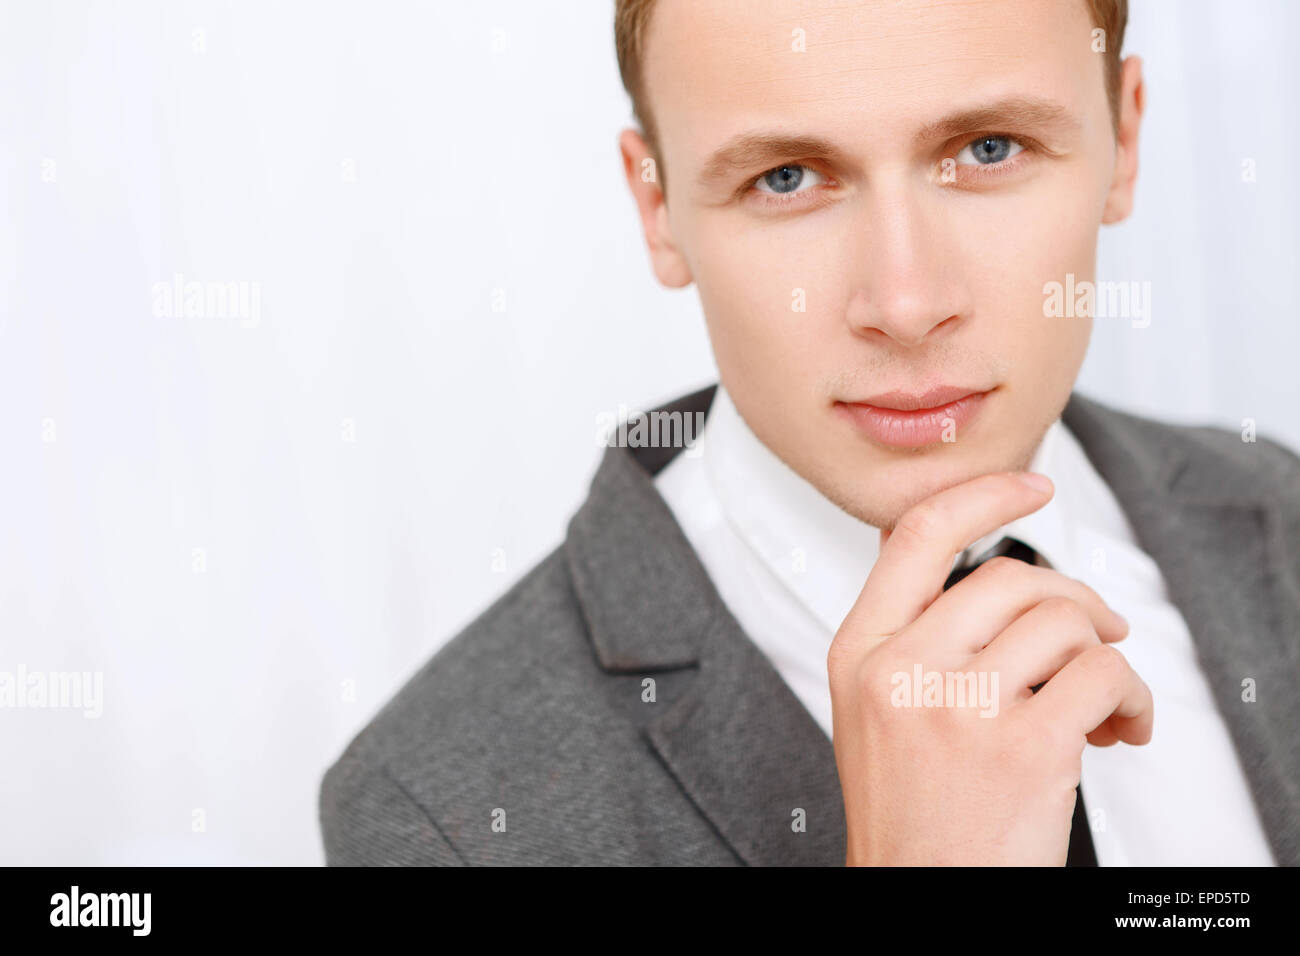 Close up of man touching his chin. - Stock Image